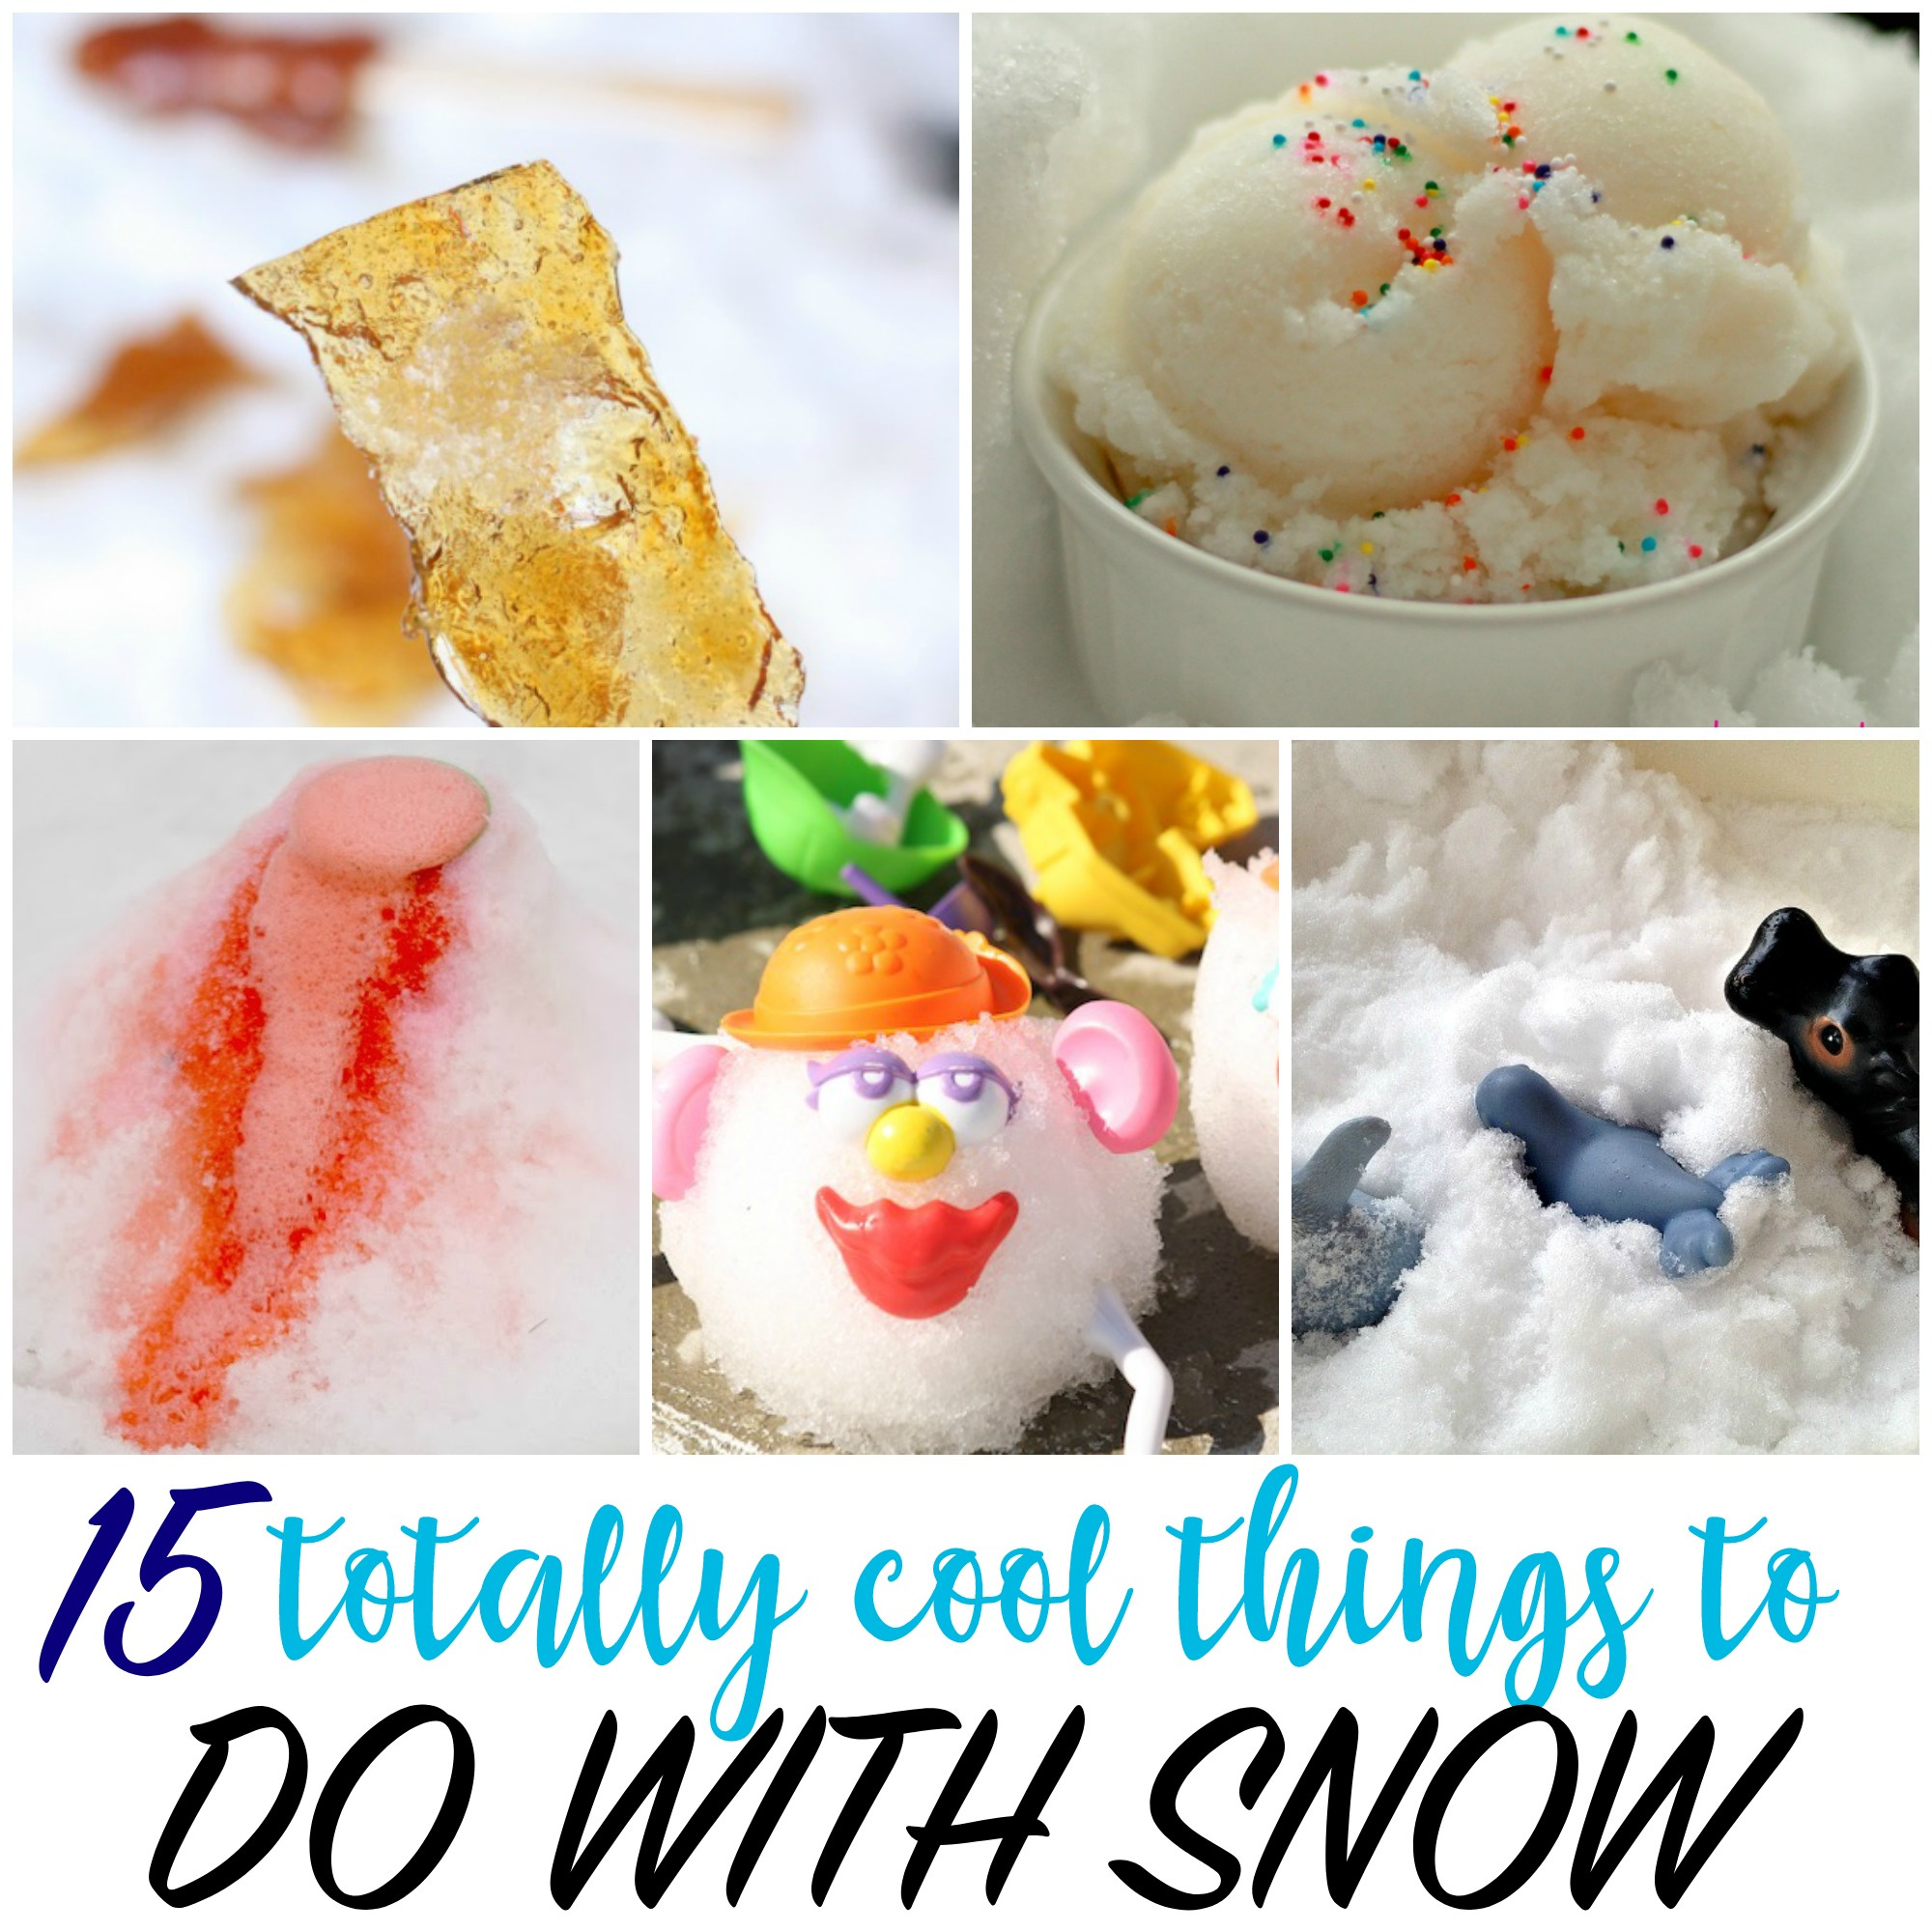 cool things to do with snow